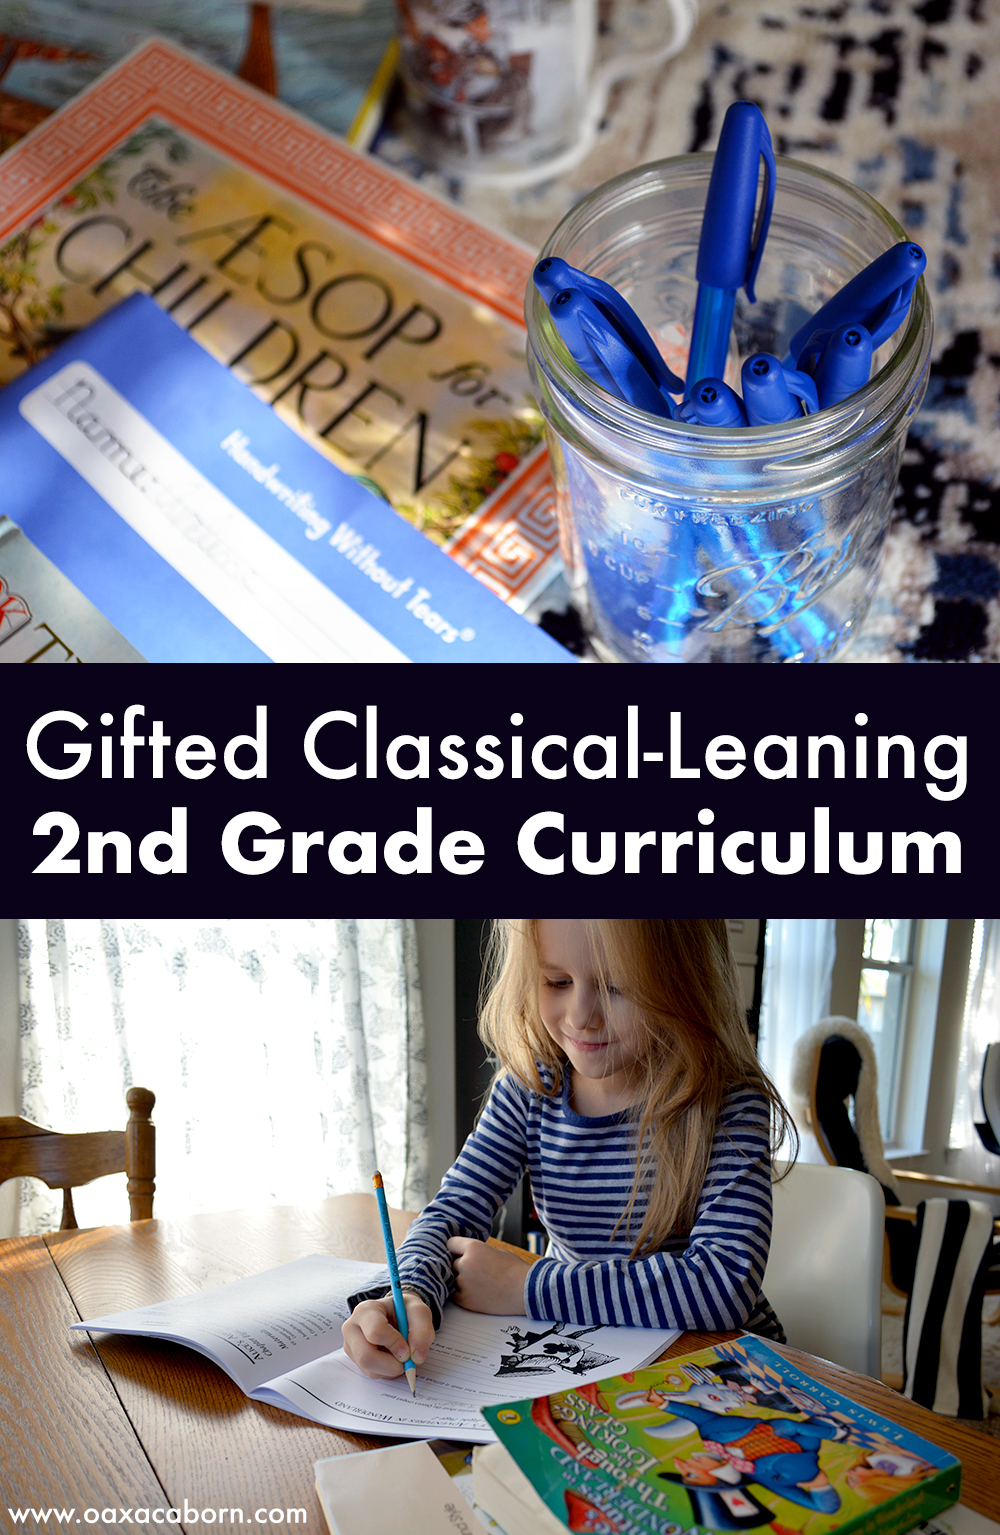 Gifted Classical-Leaning Second Grade Curriculum 2017-2018 by Gina @ Oaxacaborn